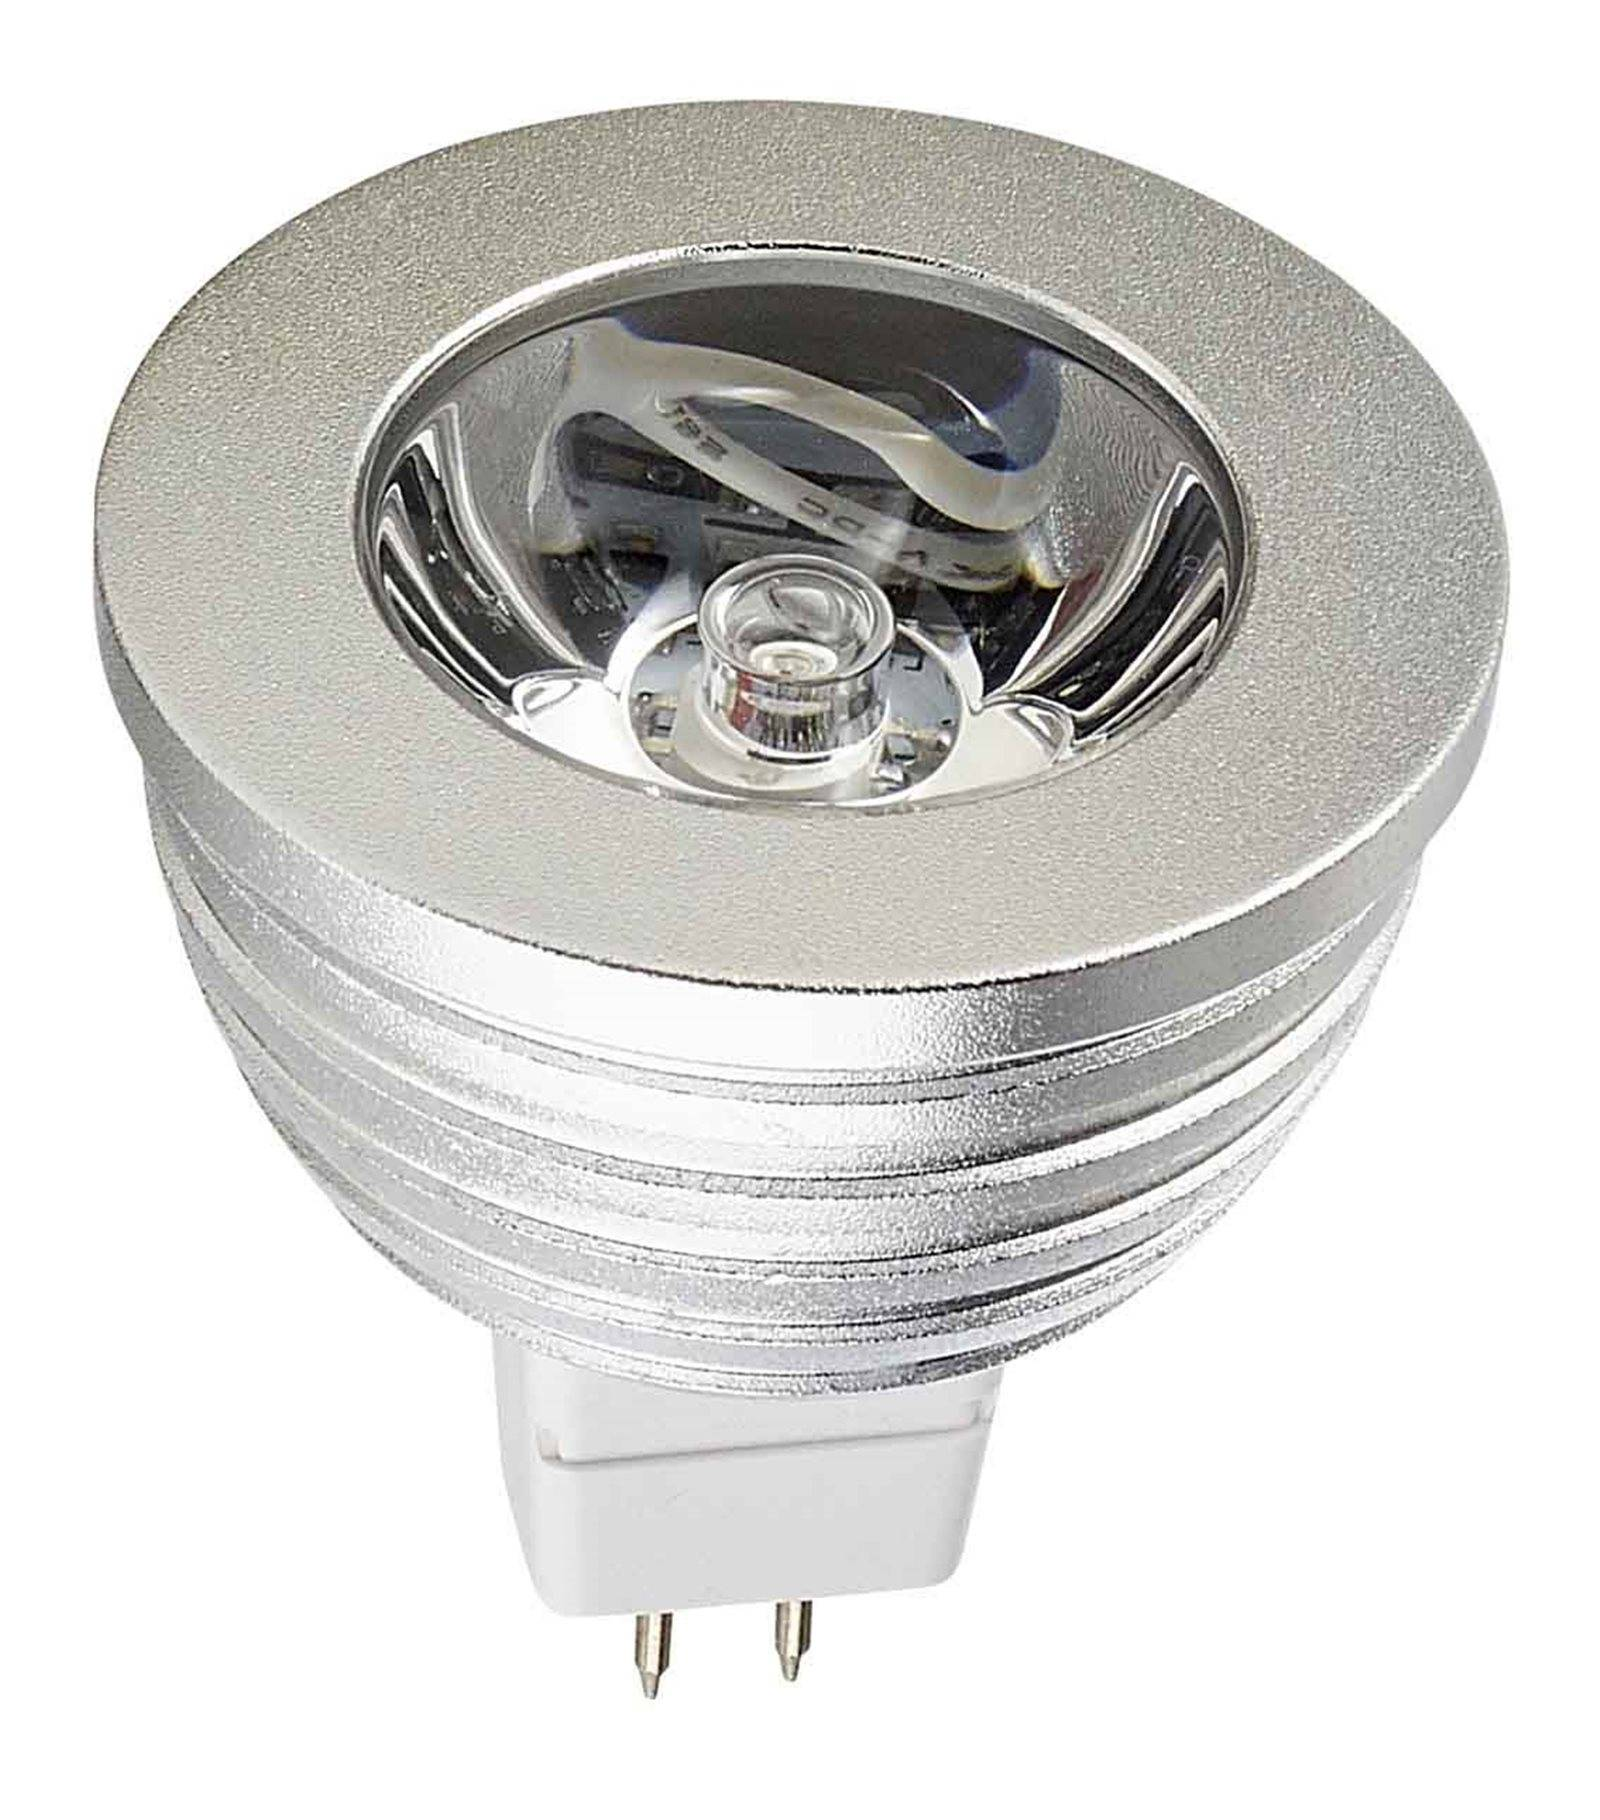 Eclairage Led 24 Volts Ampoule Led Rgb Gu5 3 12 Volts Ampoule Seule Ampoule